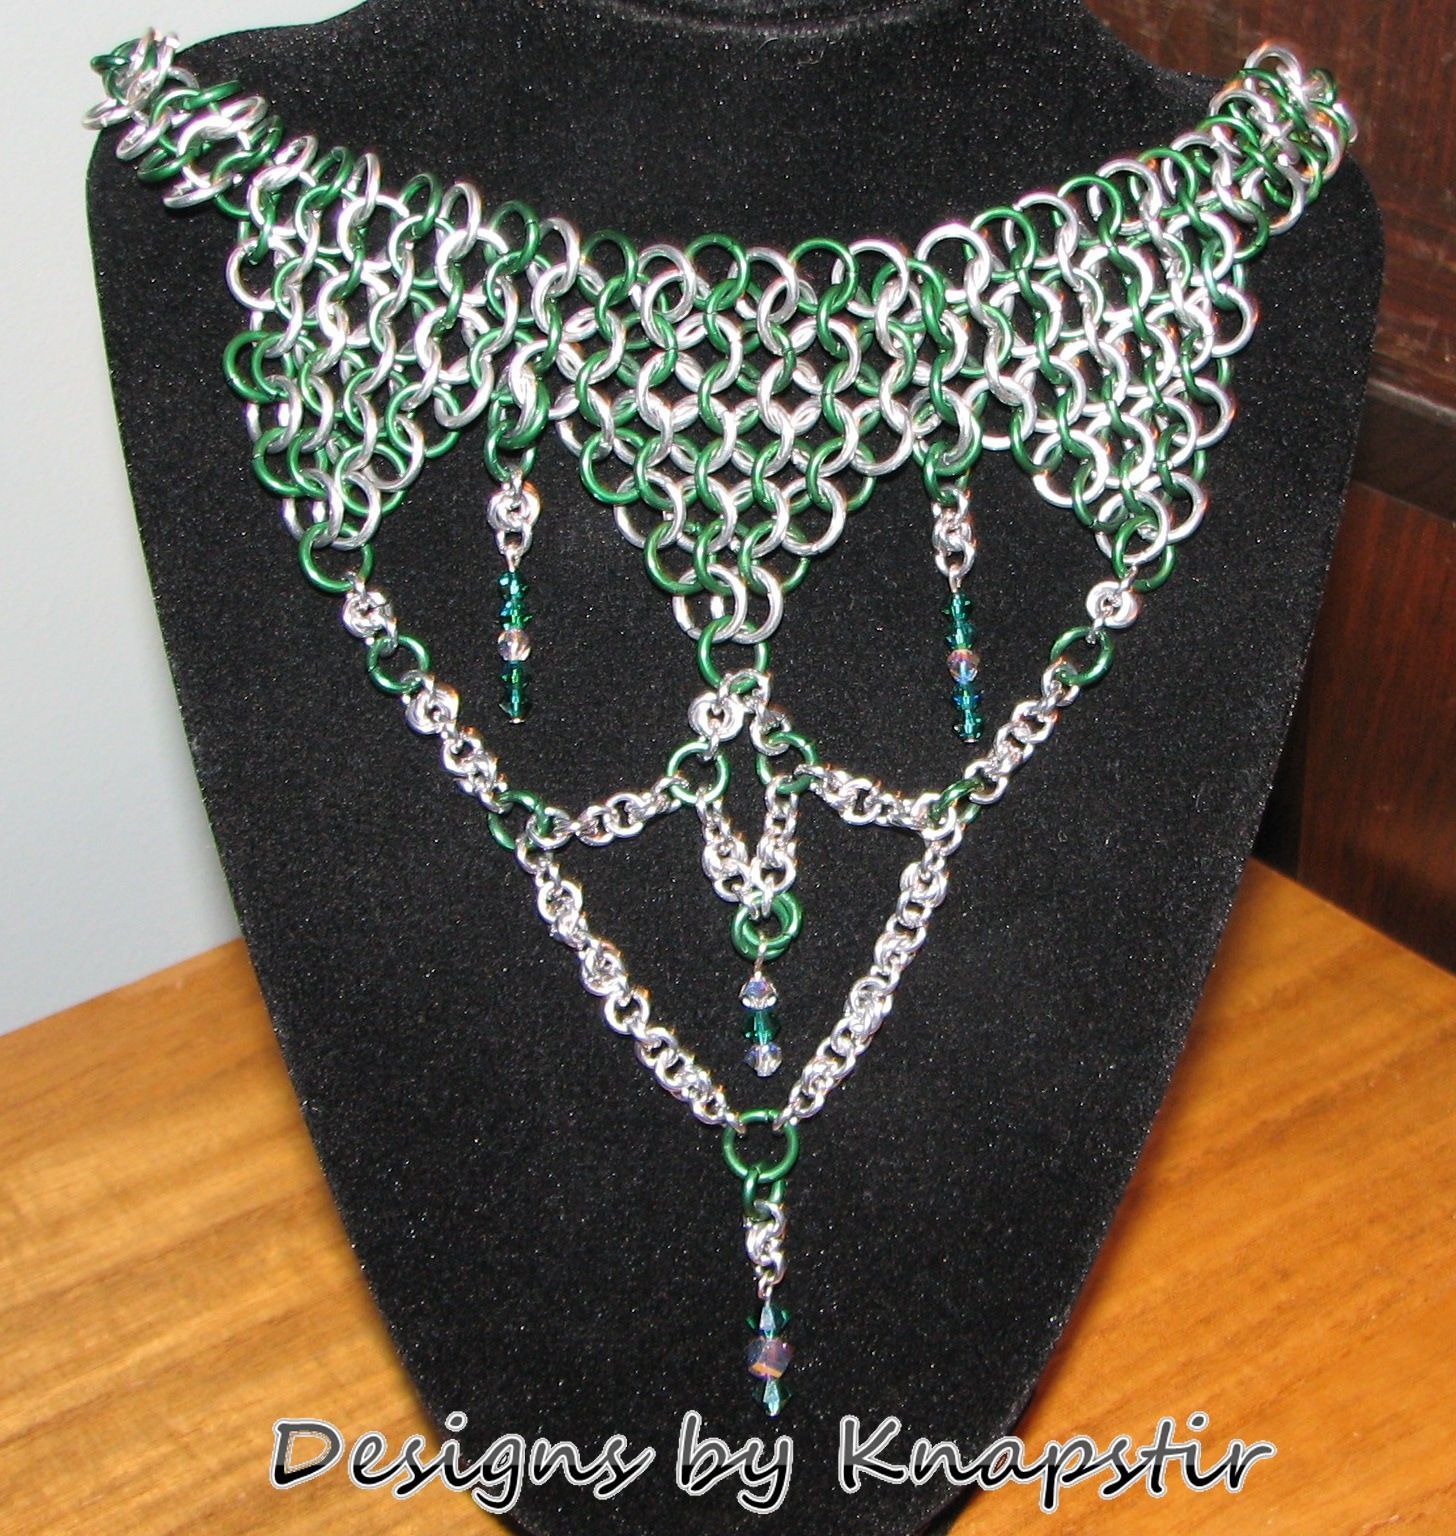 One of my first chainmaille pieces.